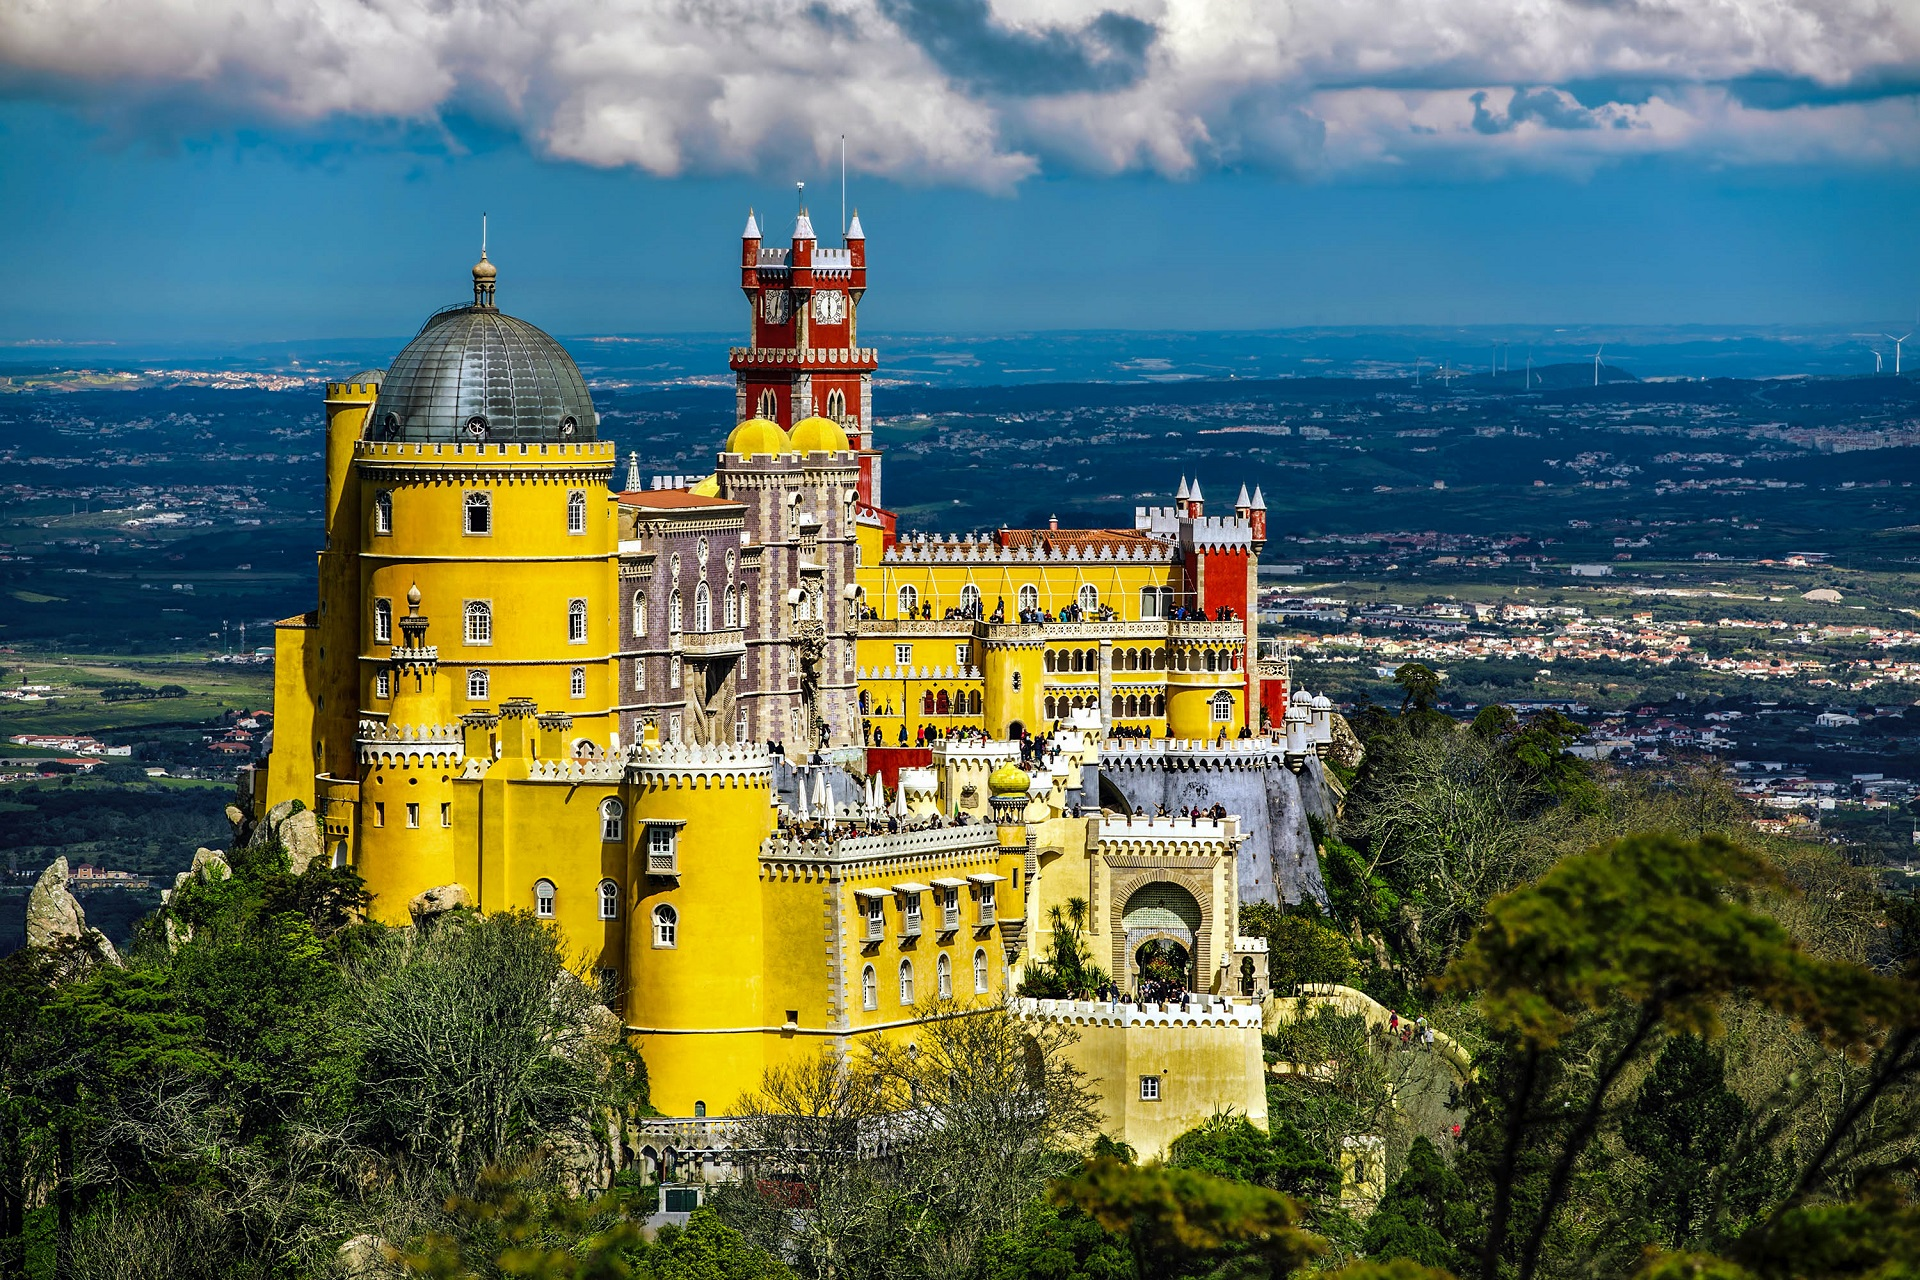 Most Stunning Buildings in the World Most Stunning Buildings in the World The Most Stunning Buildings in the World According to Lonely Planet  pena national palace sintra portugal shutterstock 403148269 2